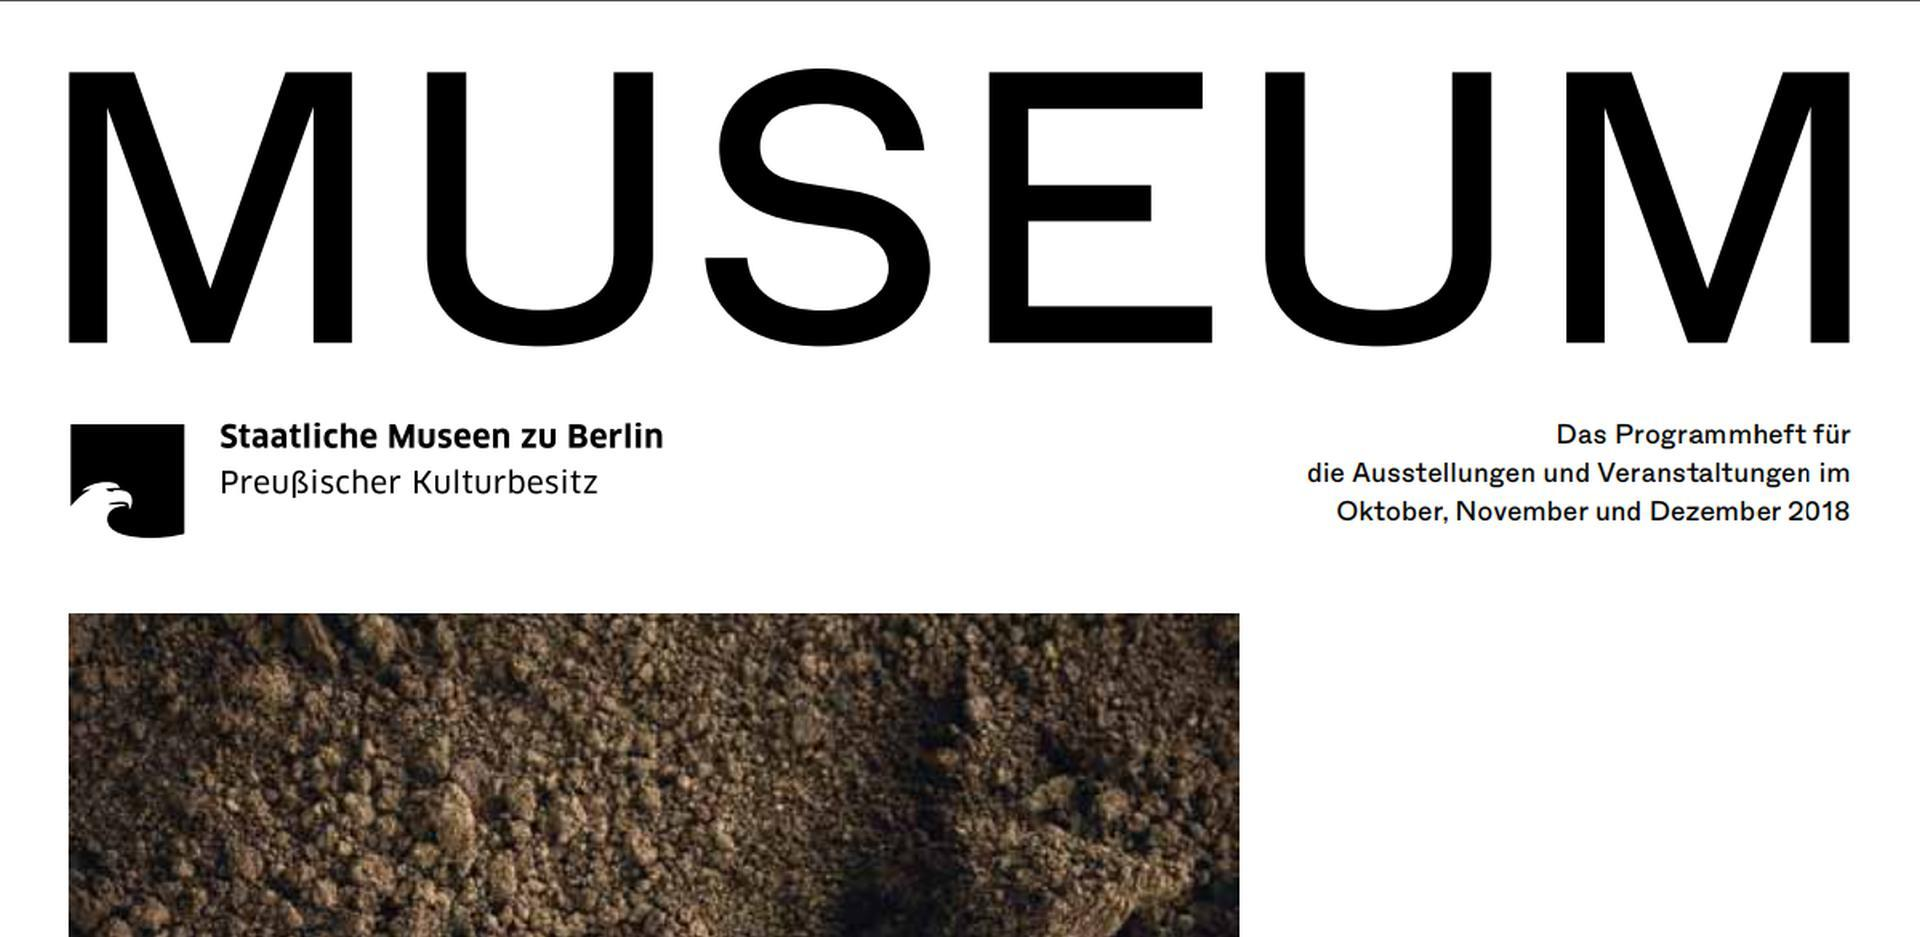 Museum IV 2018 - The program of the Staatliche Museen zu Berlin is out now!